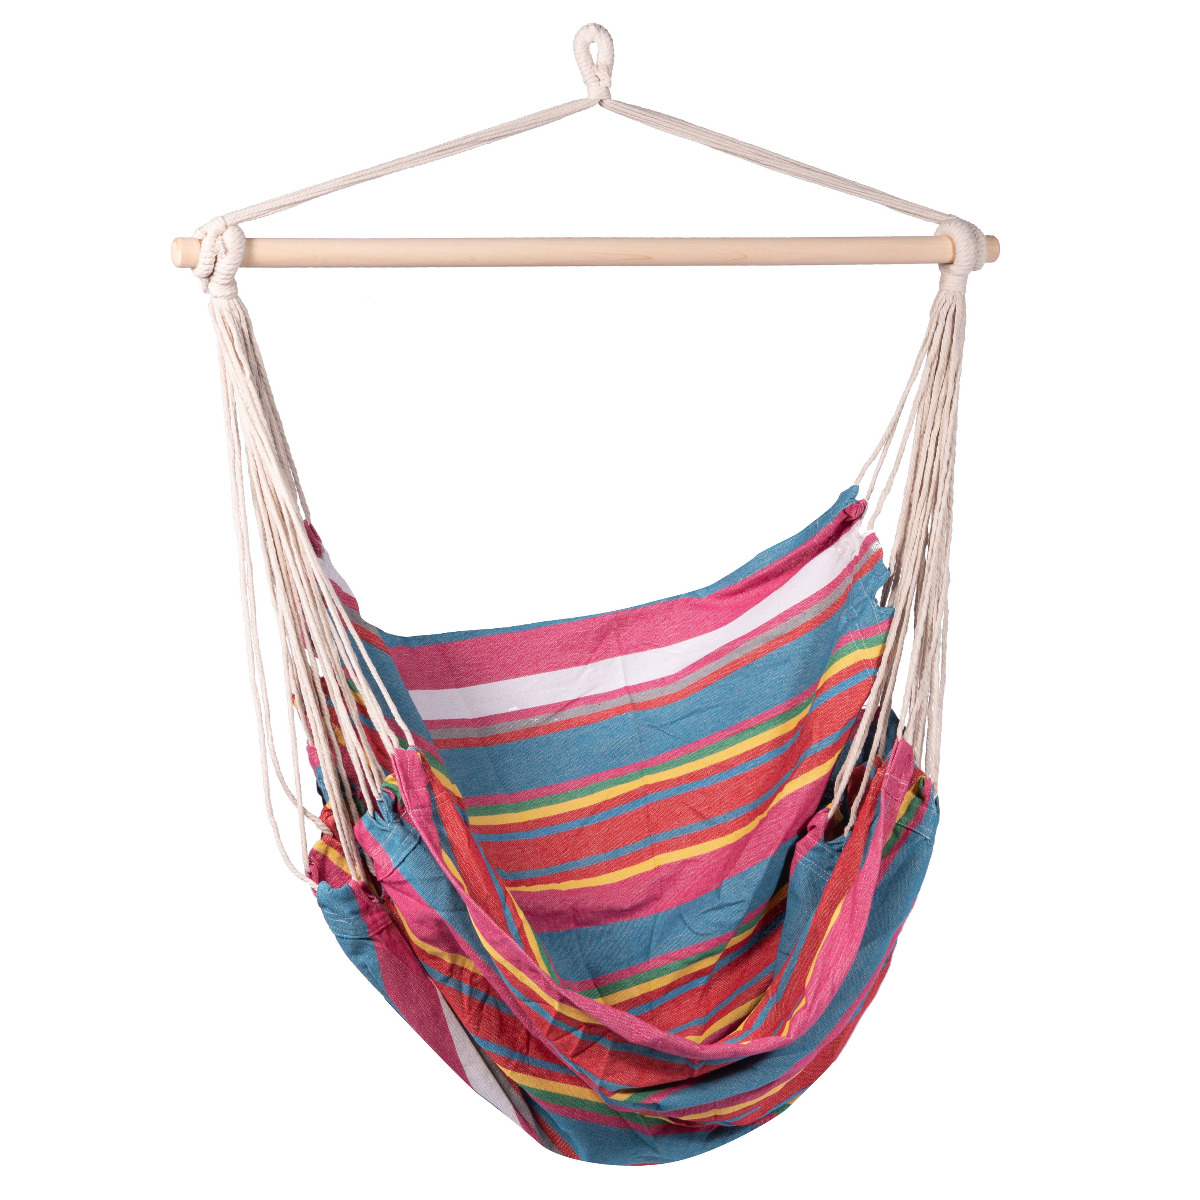 'Salvora' Single Hangstoel - Veelkleurig - 123 Hammock